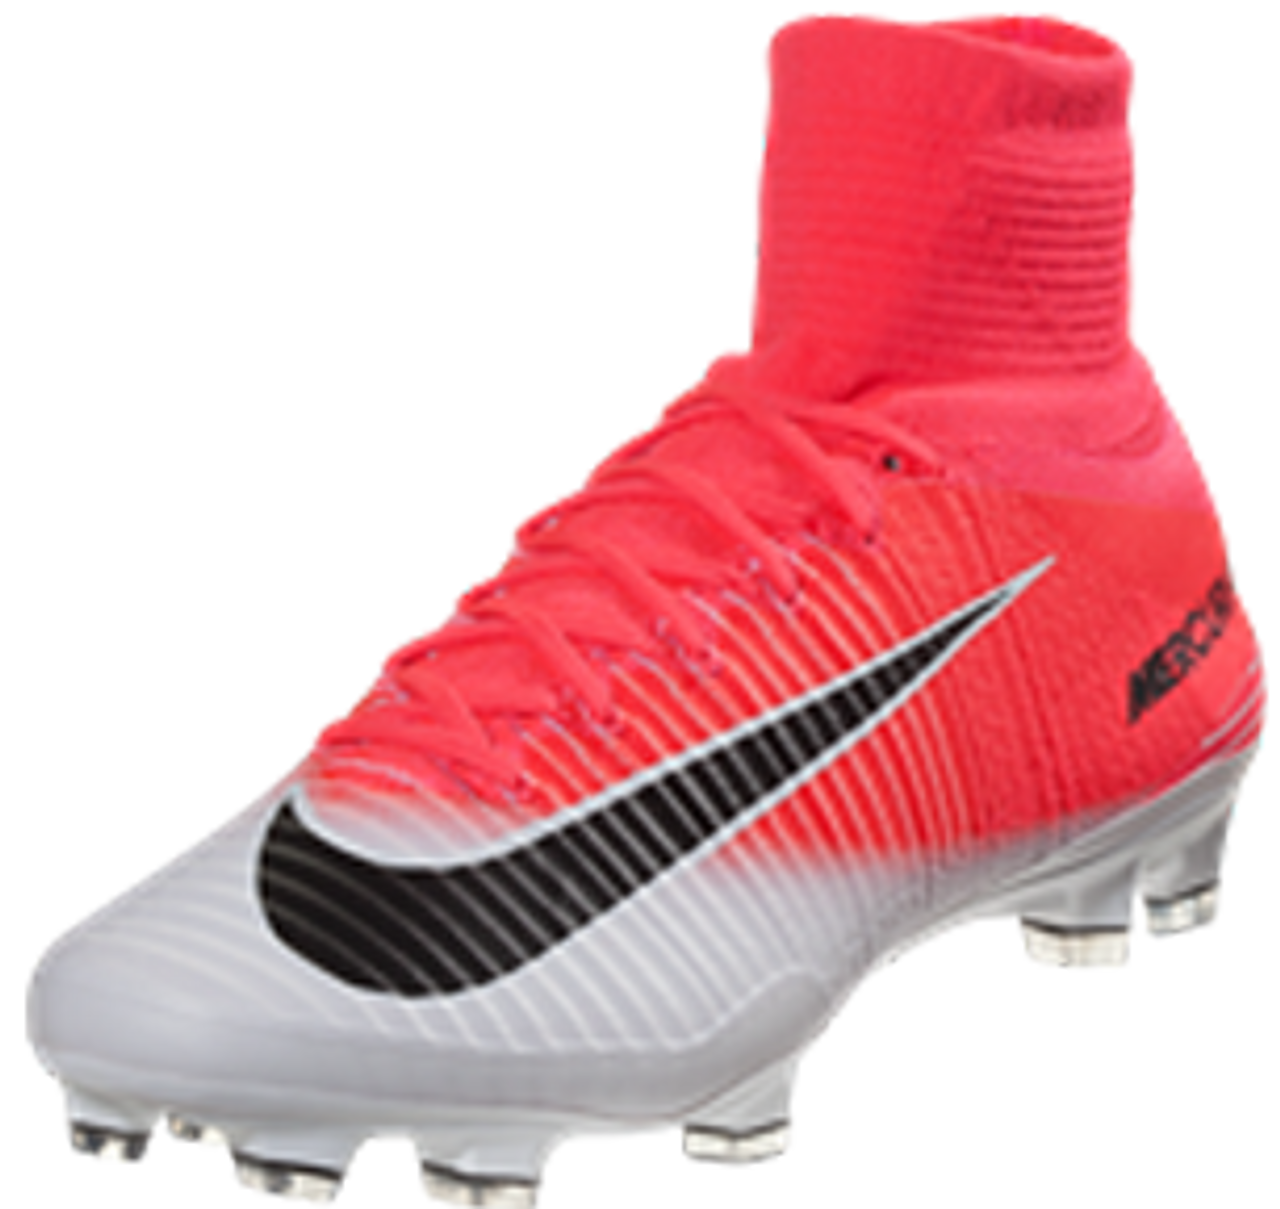 huge selection of 6e1f6 c52f5 NIKE MERCURIAL SUPERFLY V FG racer pink/black/white